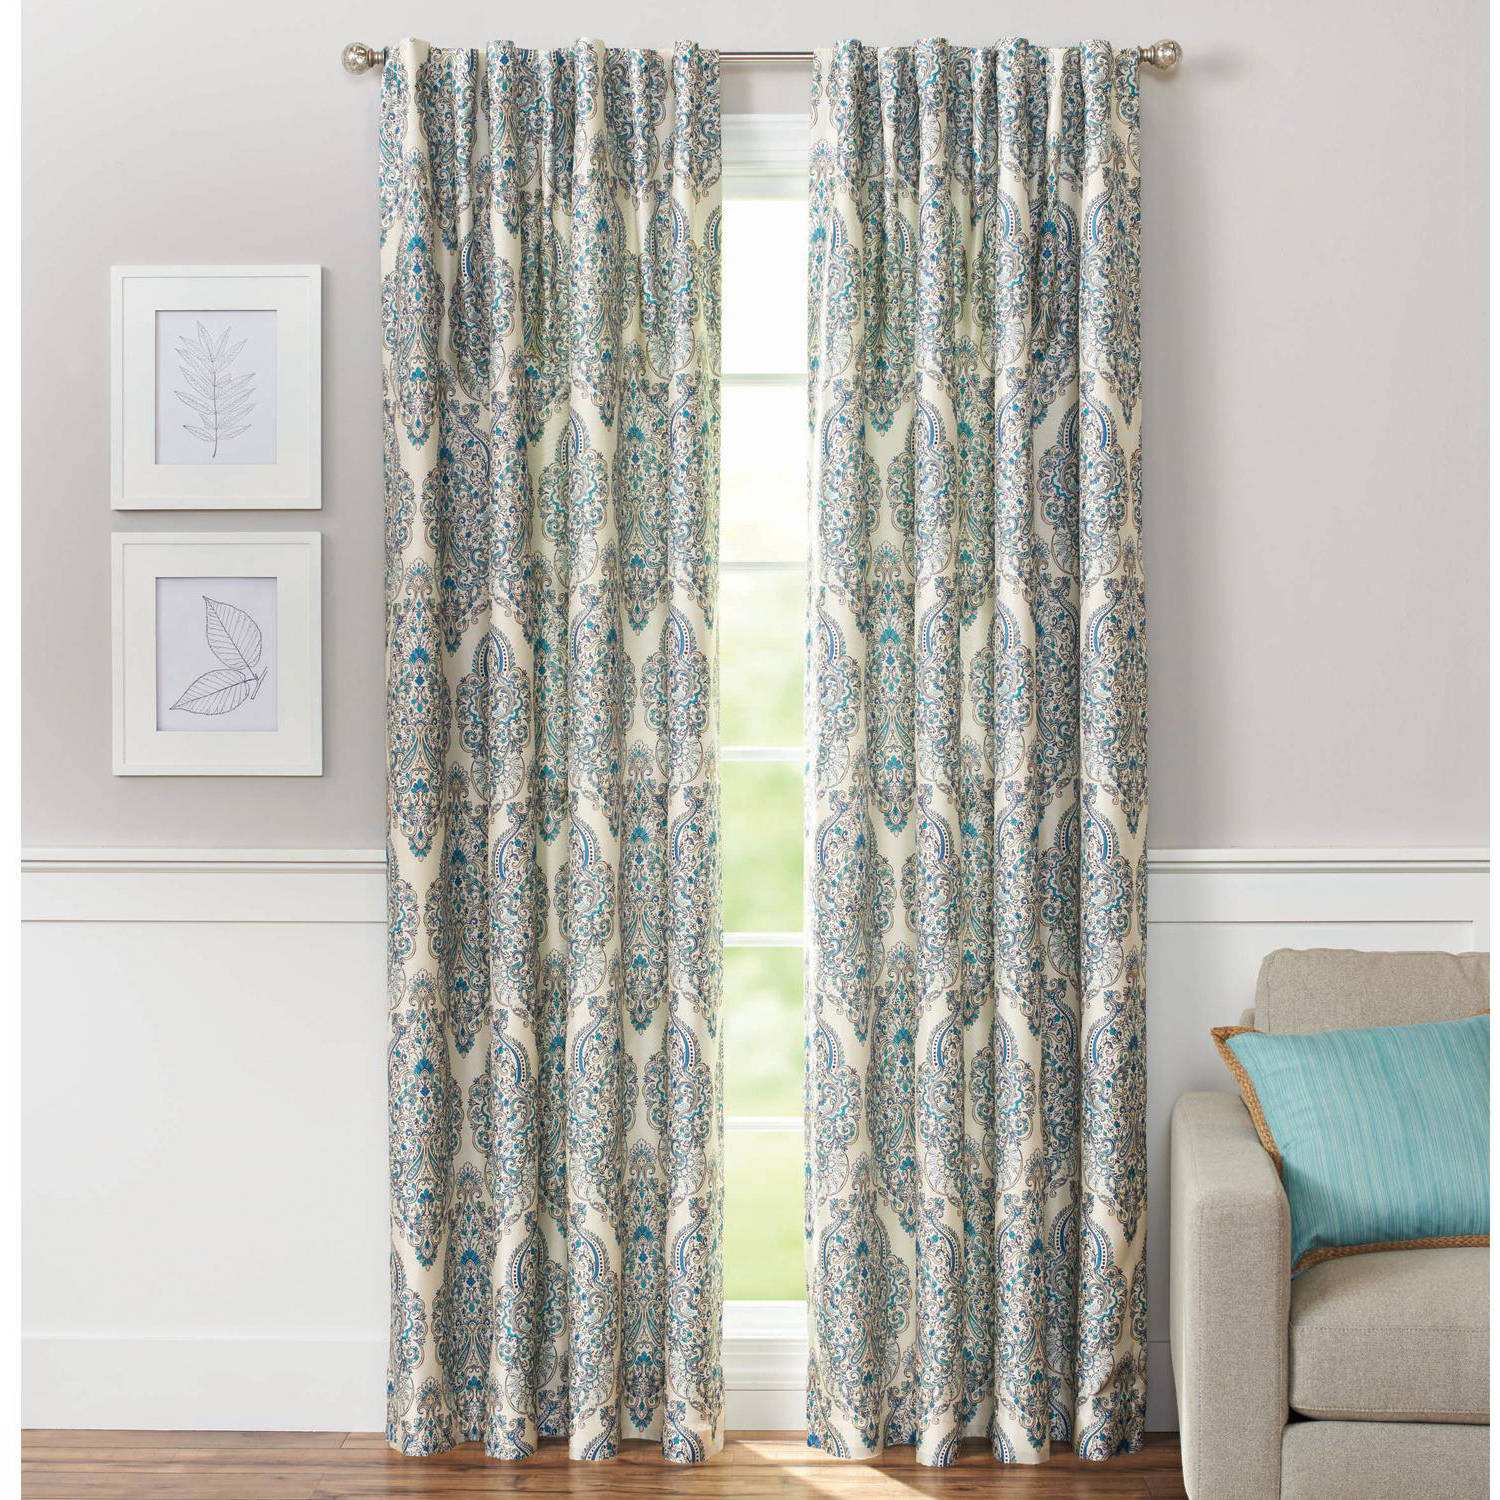 Amazing Curtain : Living Room Navy Blue Curtains Walmart Drapes Fearsome regarding Walmart Living Room Curtains